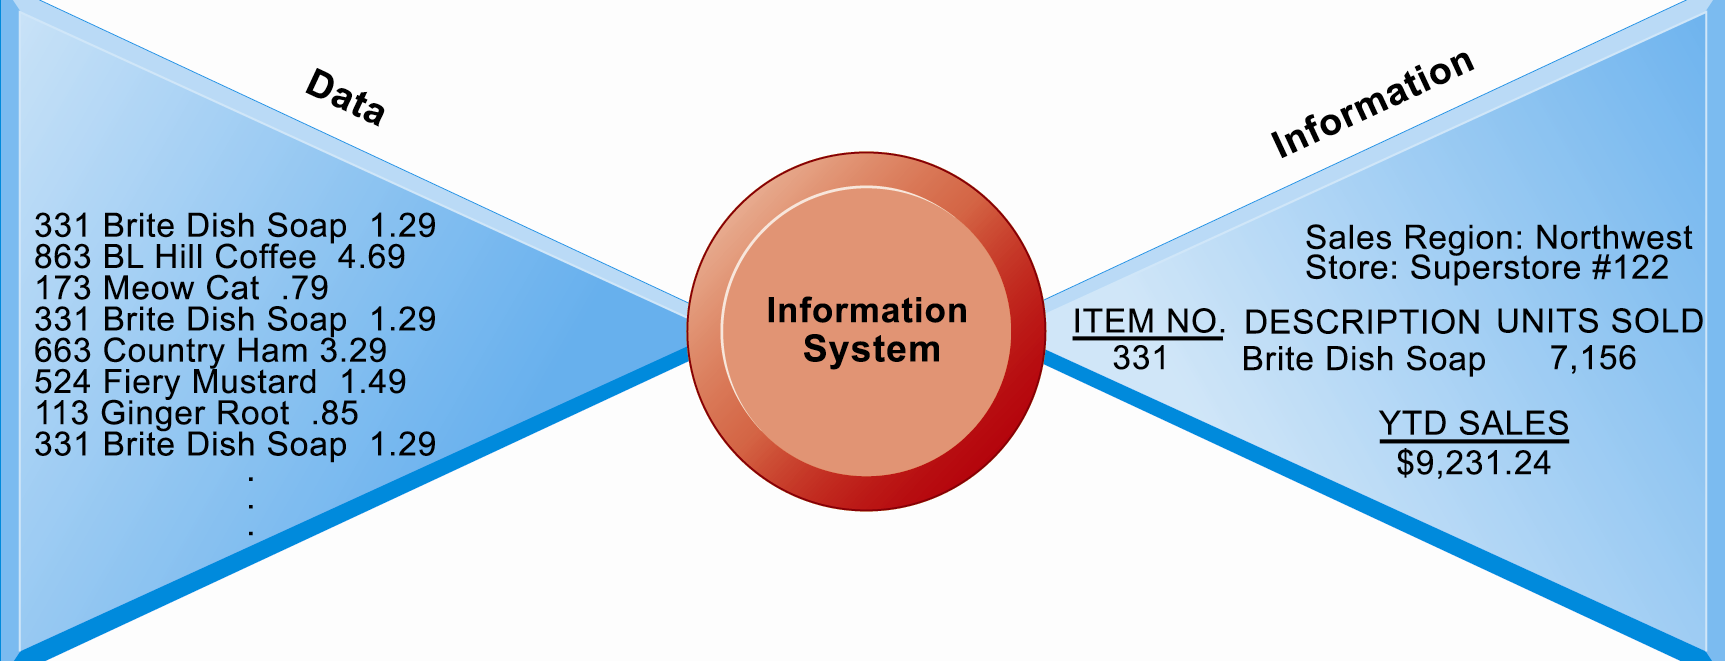 Perspectives on Information Systems Data and Information Figure 1.